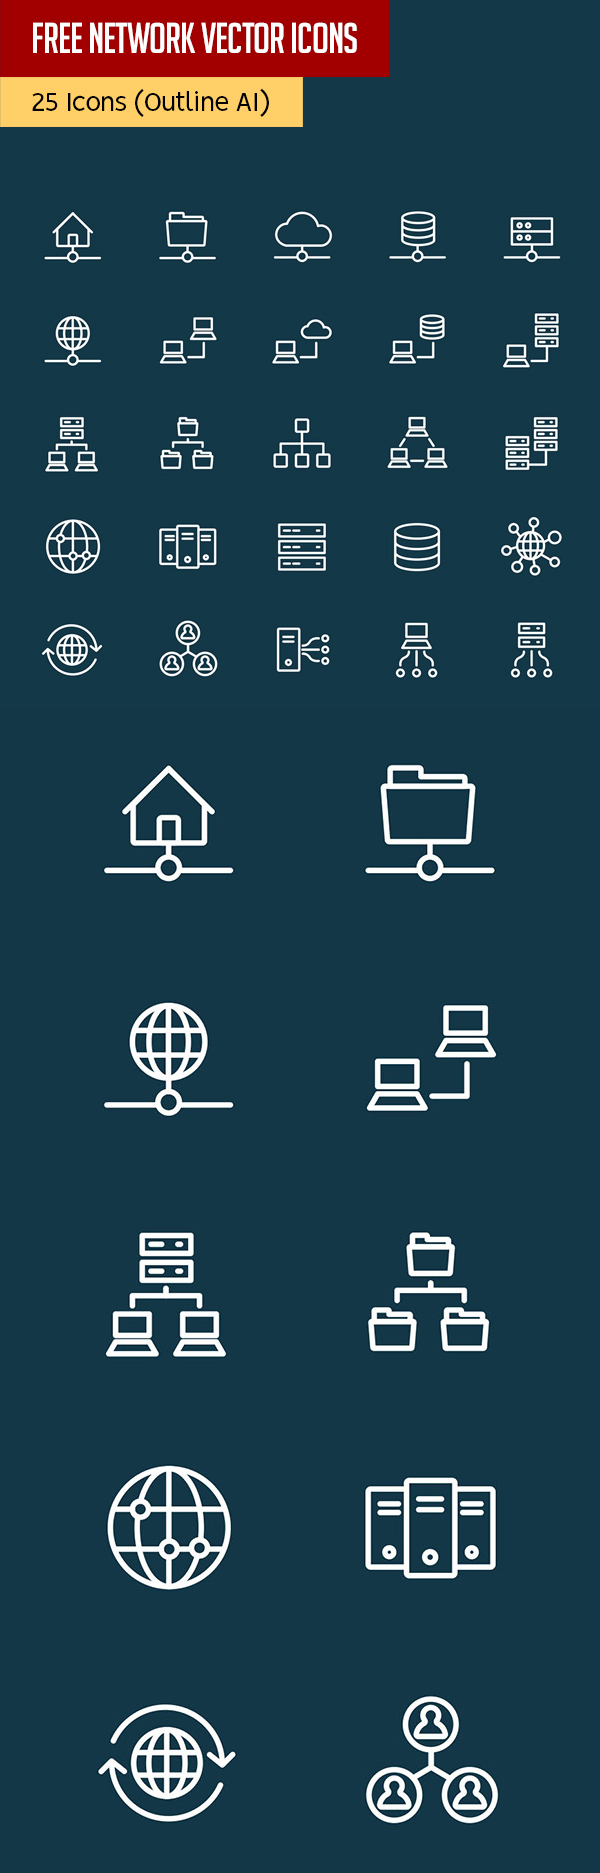 Free Vector Network Icons